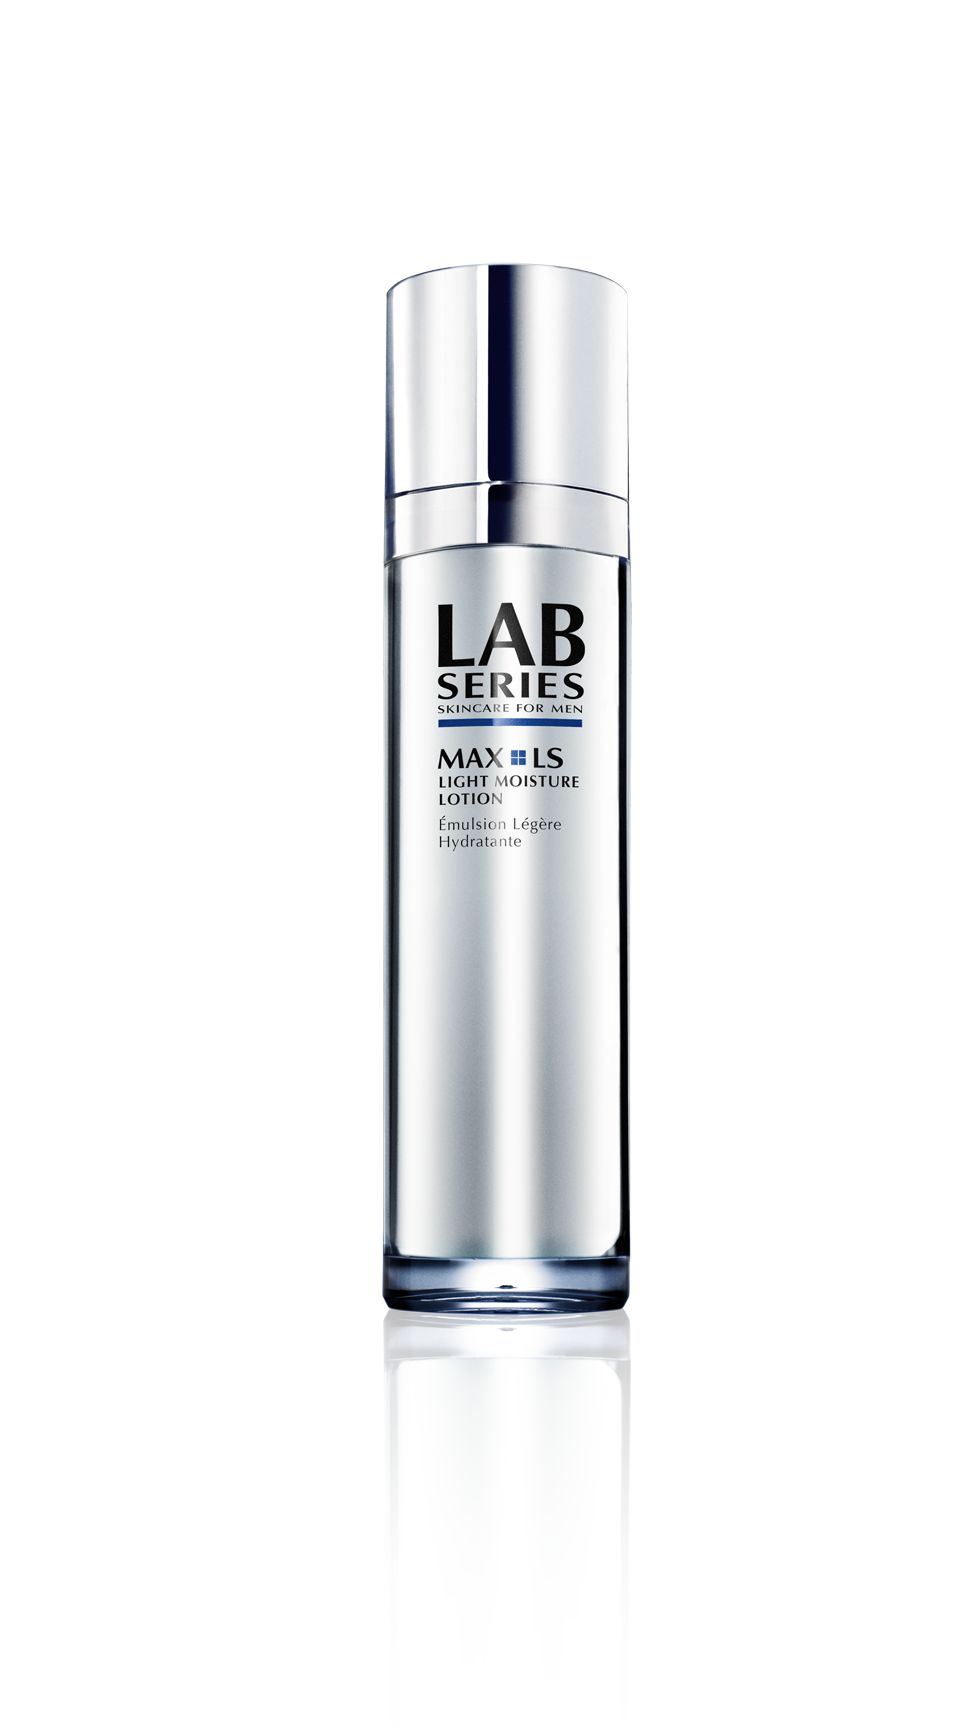 Lab Series MAX LS Light Moisture Lotion